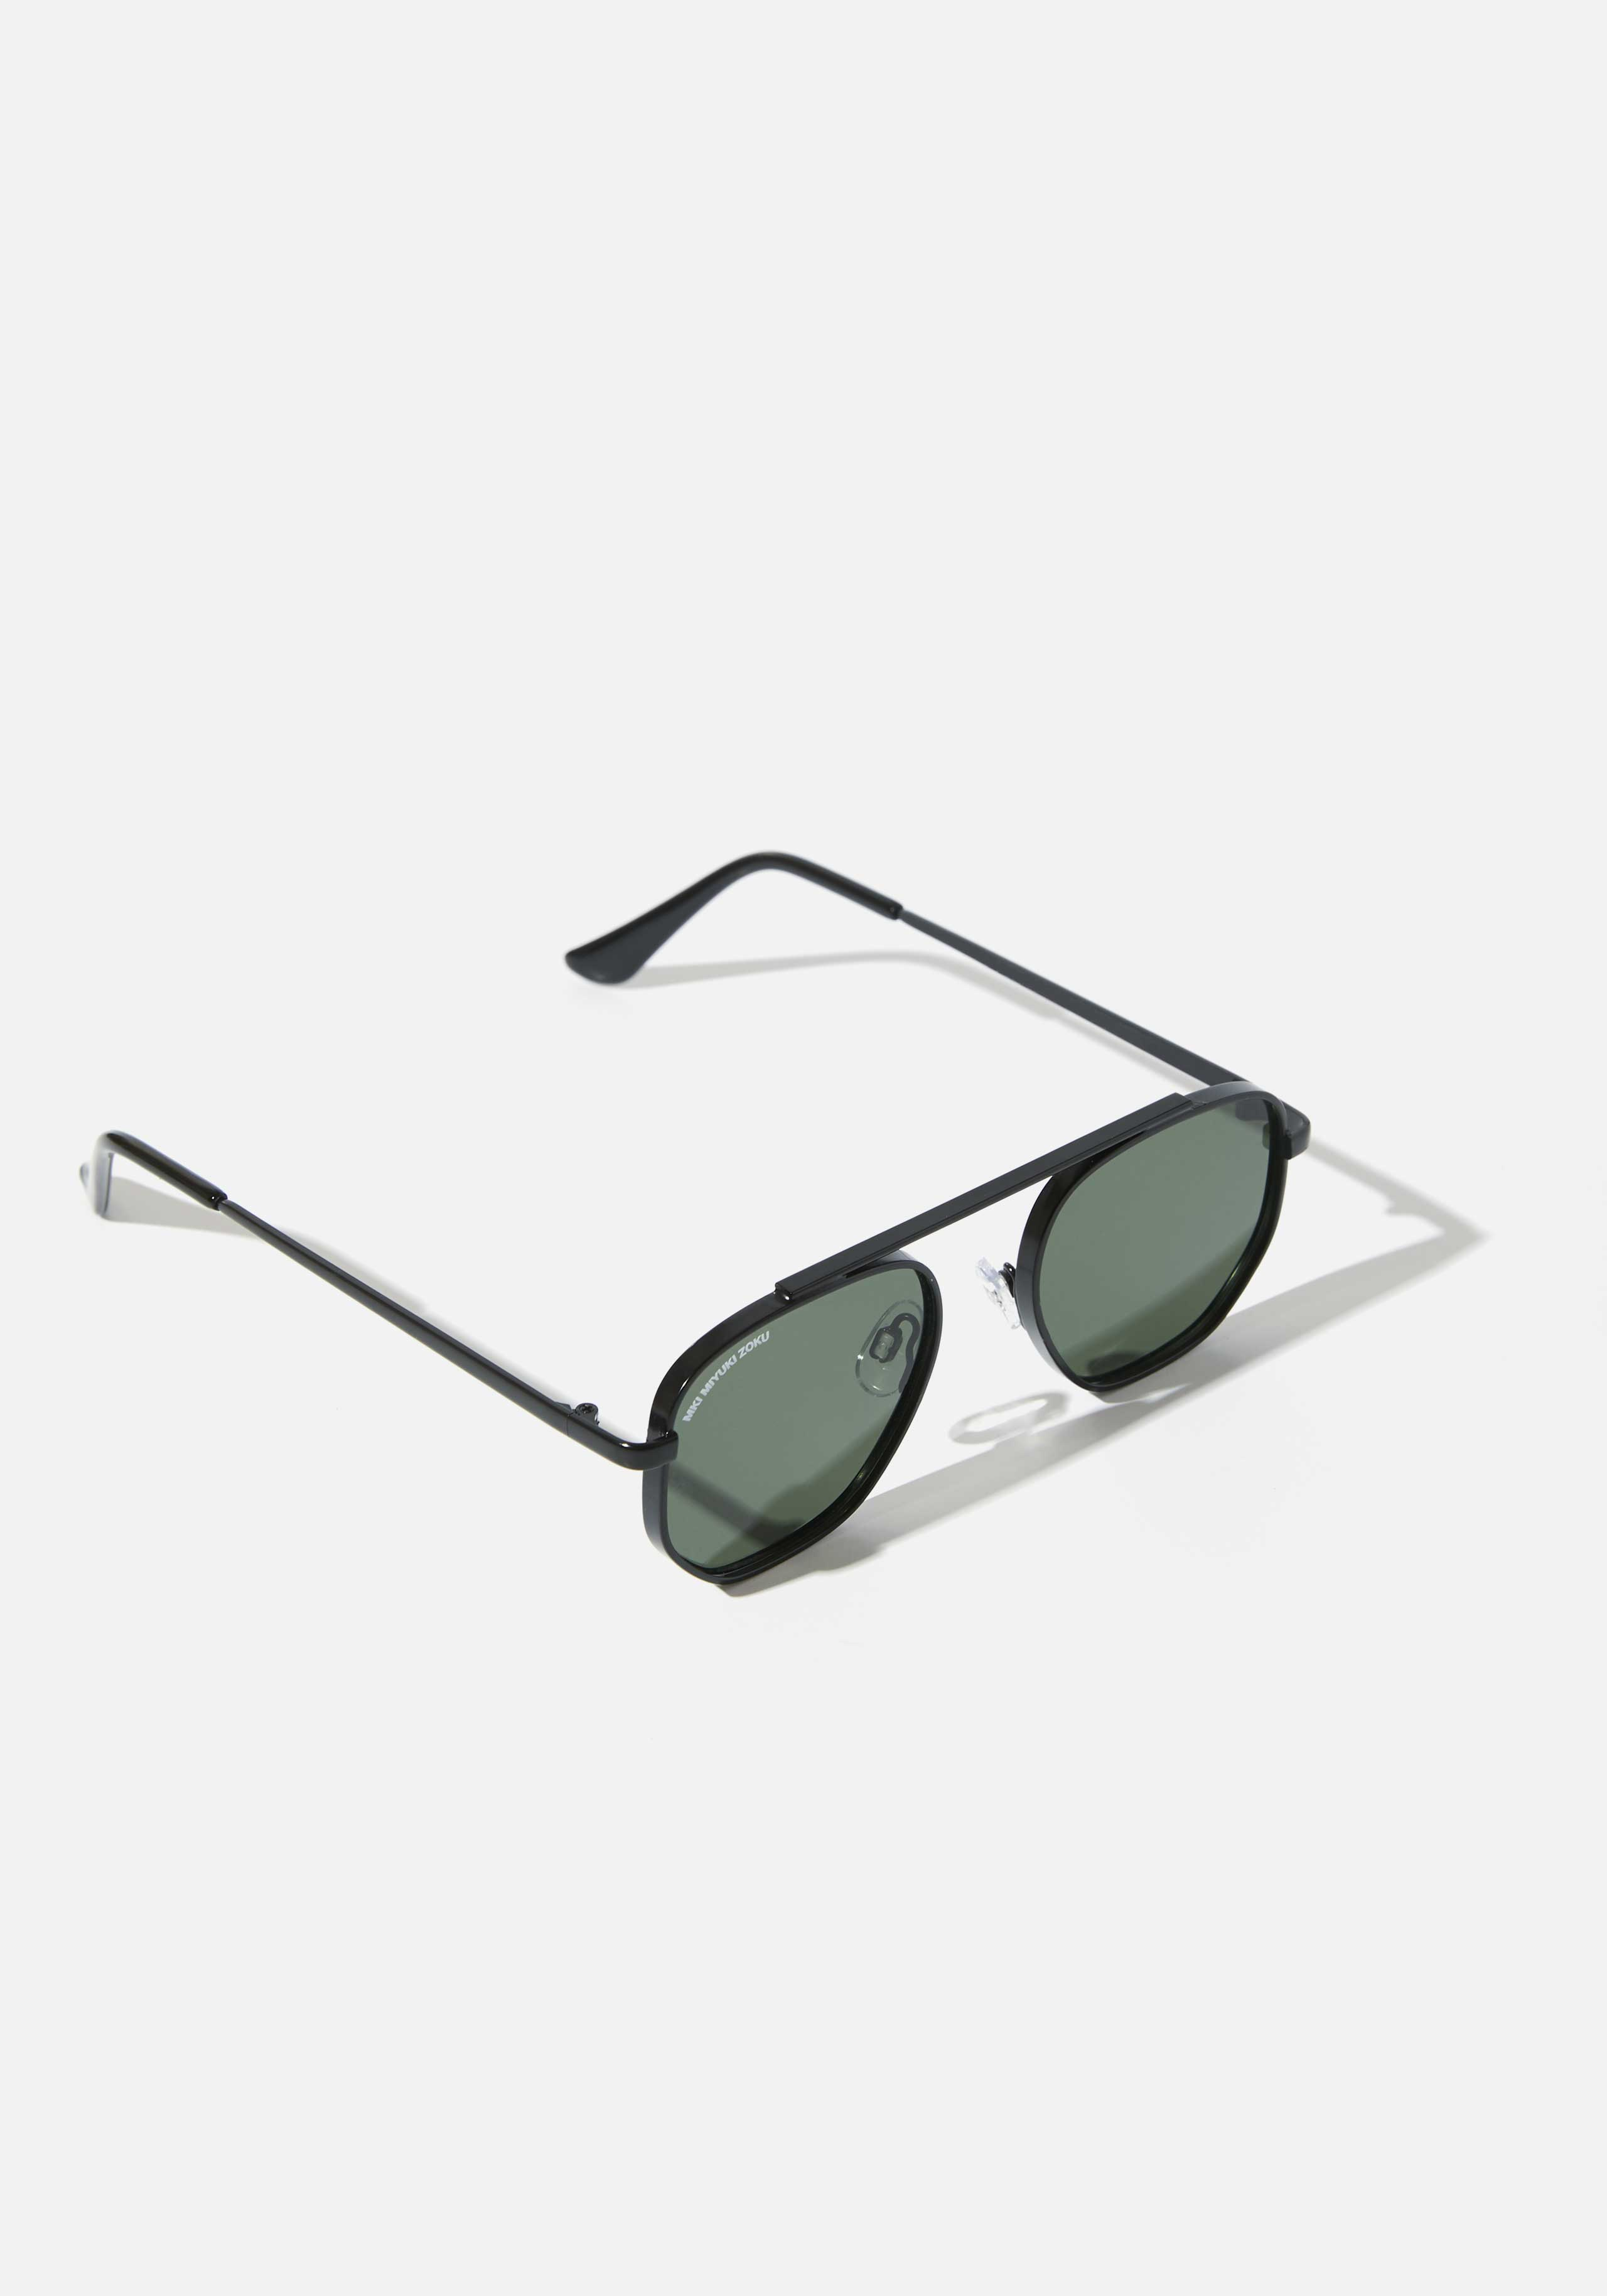 mki metal hex sunglasses 2